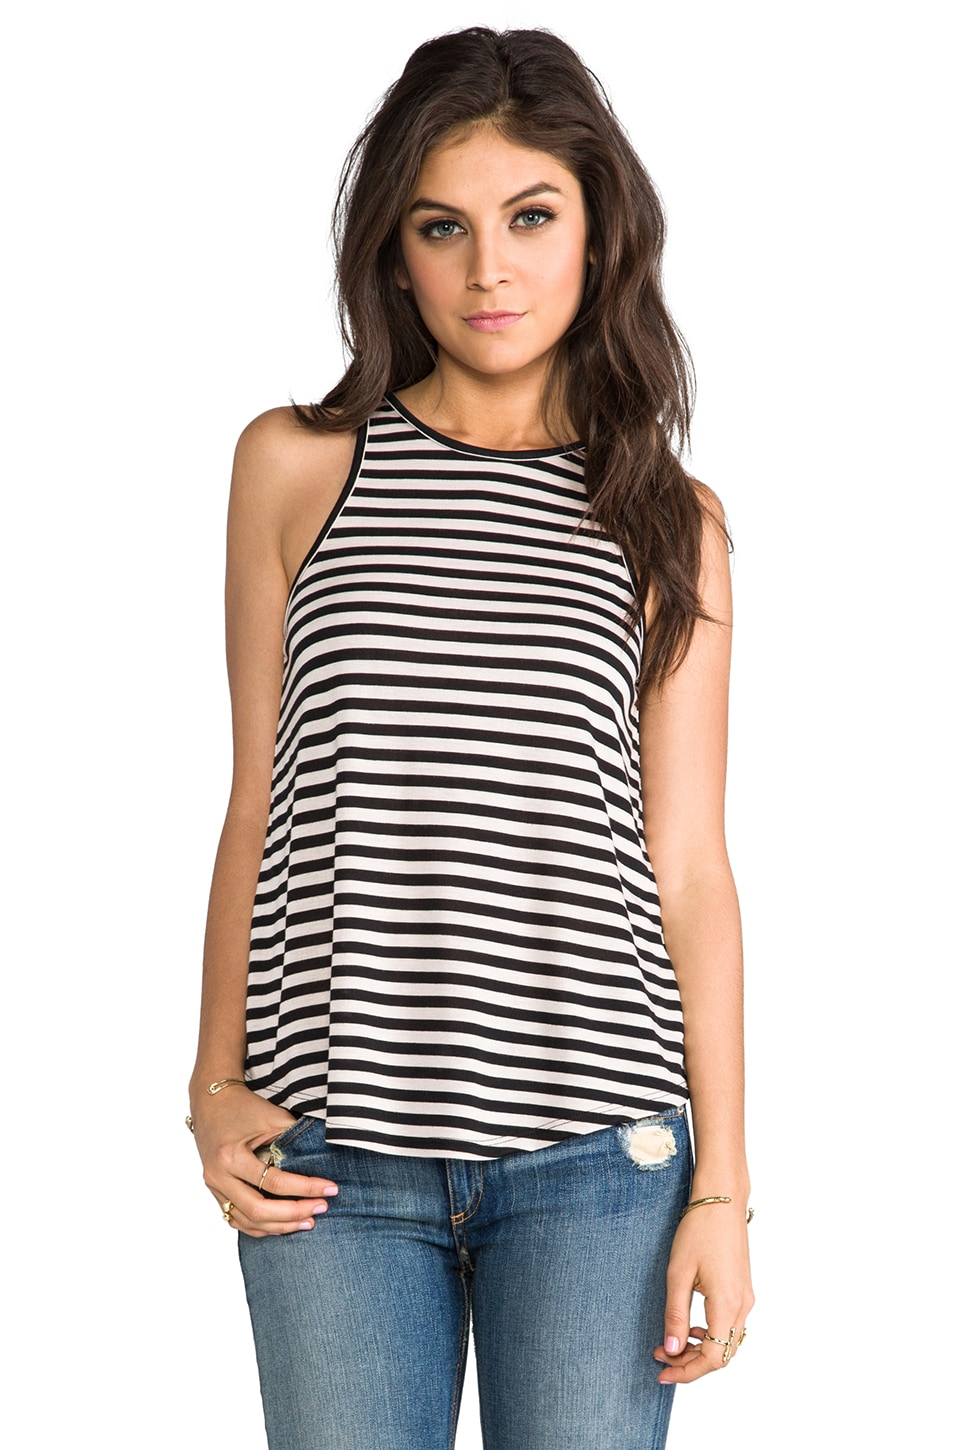 The Lady & the Sailor Bare Striped Tank in Nude Stripe